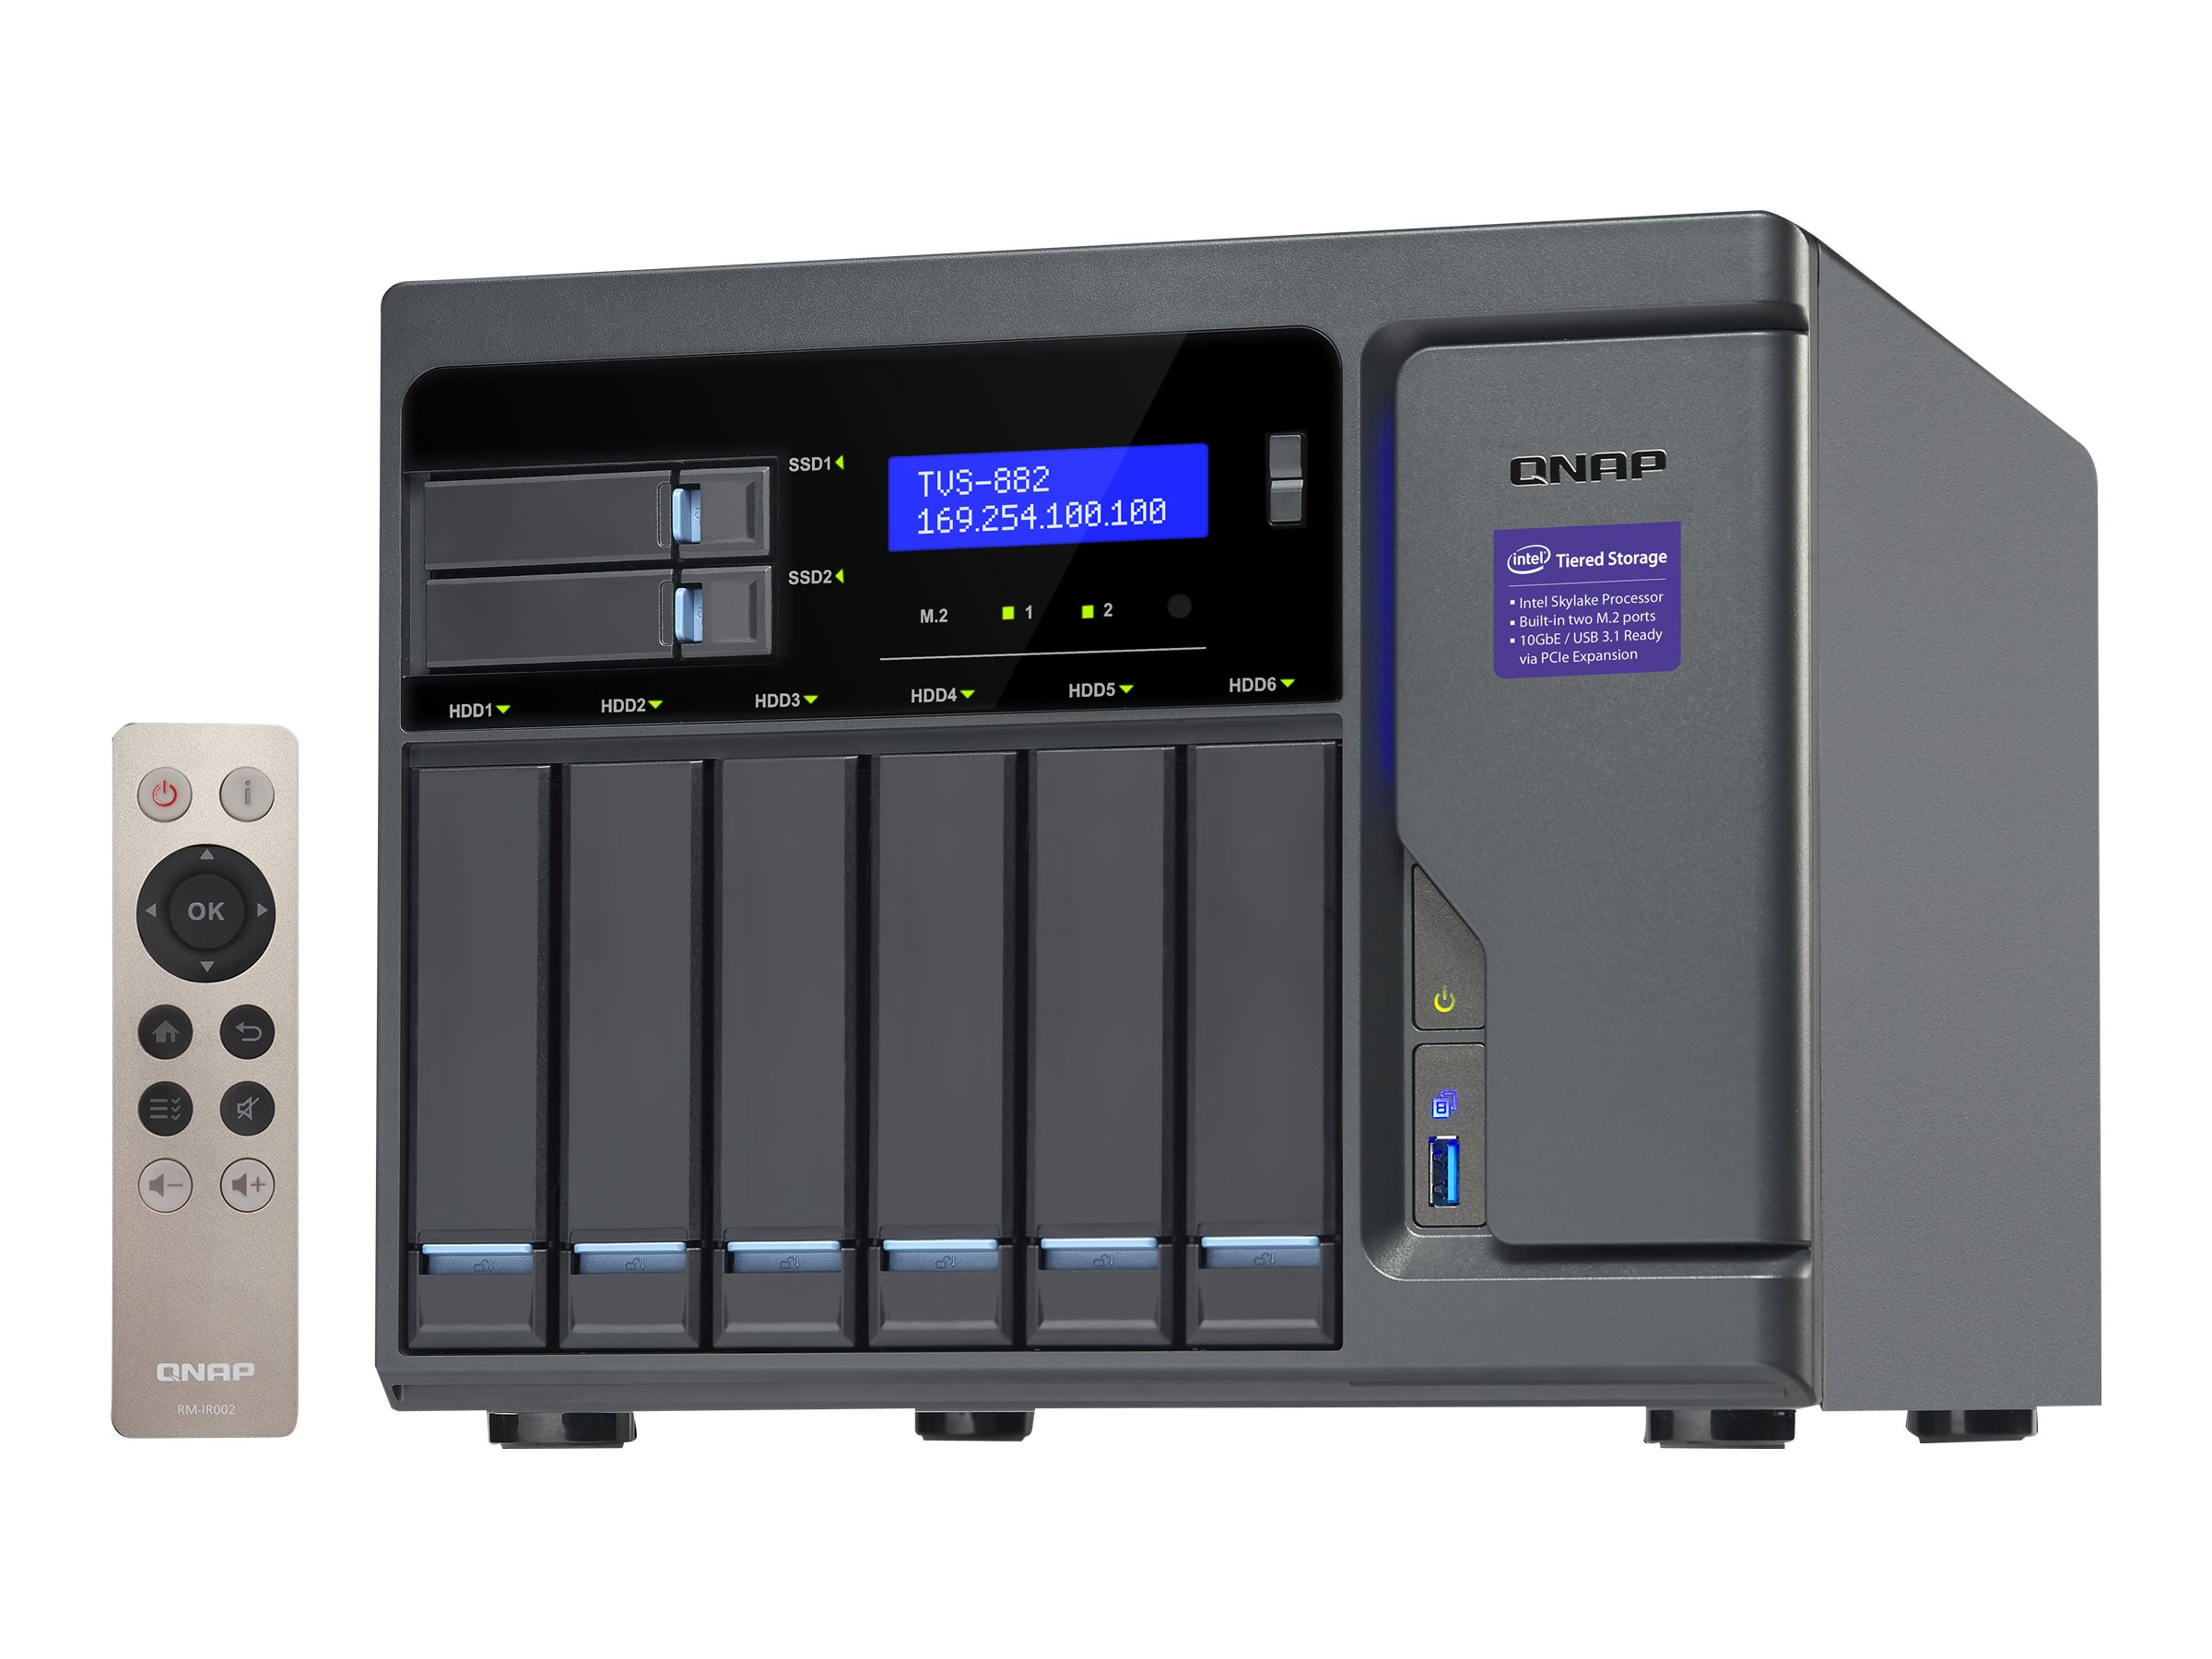 Qnap High Performance 8-Bay 6+2 NAS iSCSI IP-SAN w  Intel Skylake, TVS-882-I3-8G-US